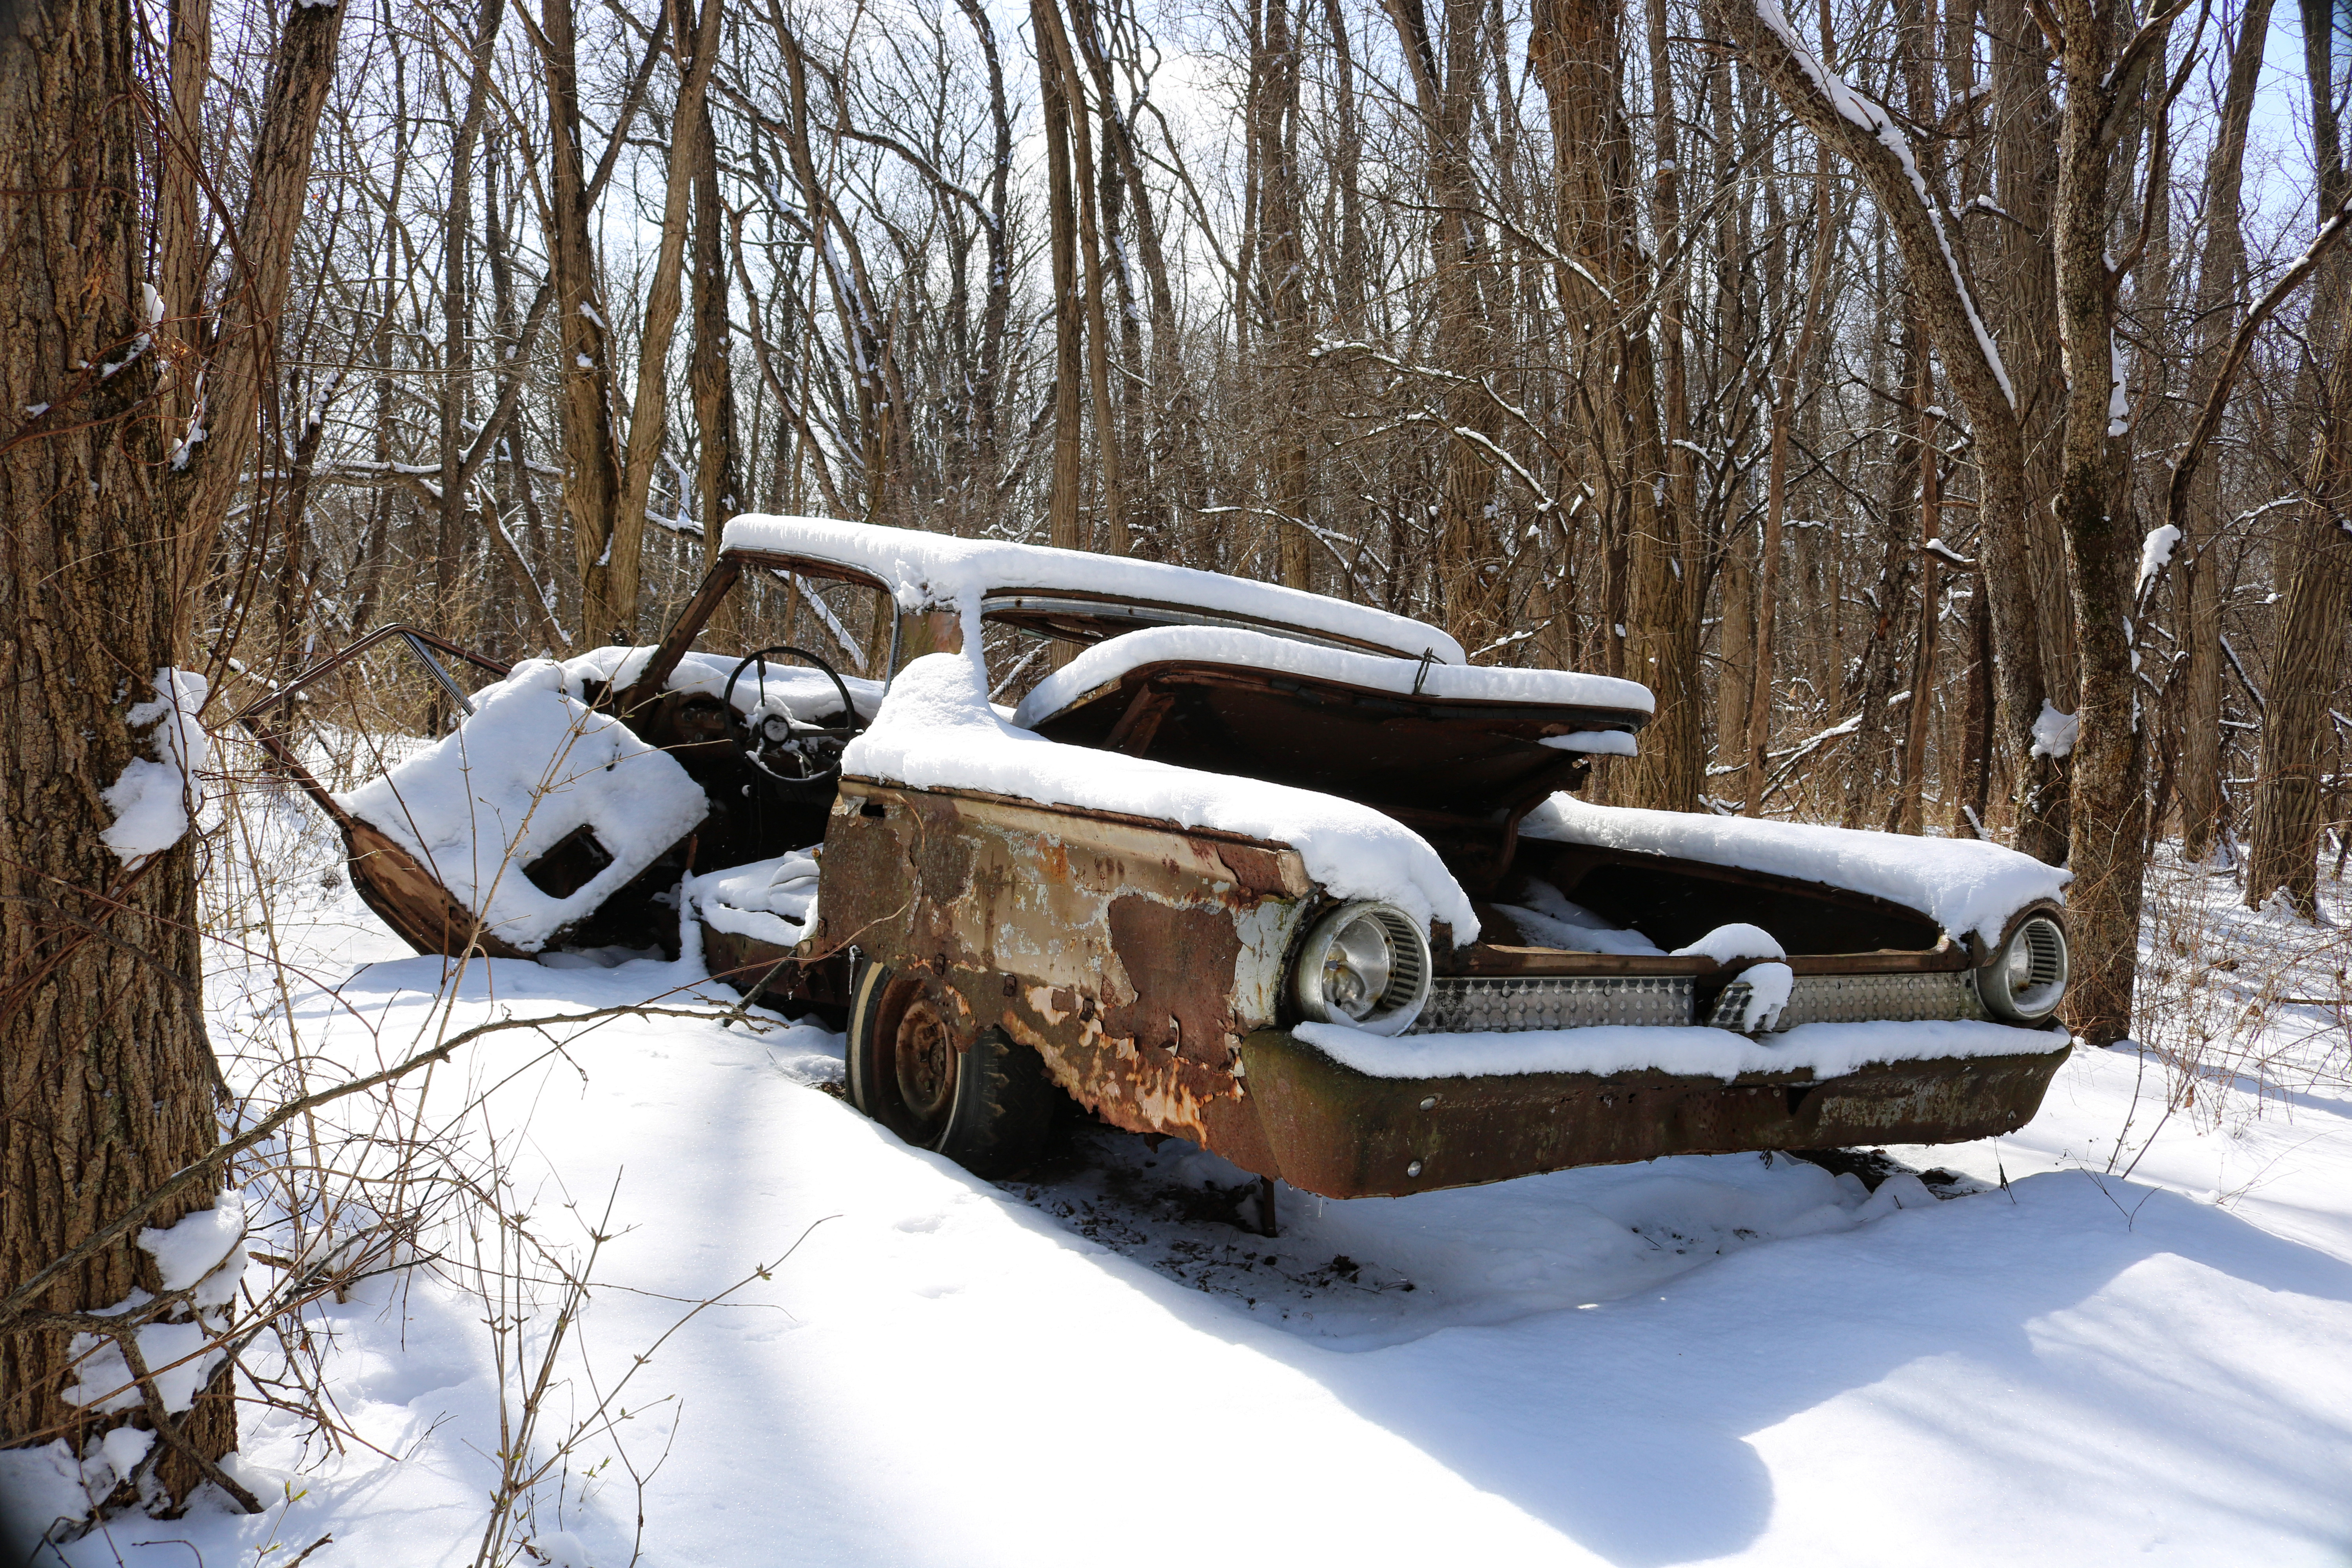 Snowy Abandoned Car In Woods Near Chicago Il By Request Oc